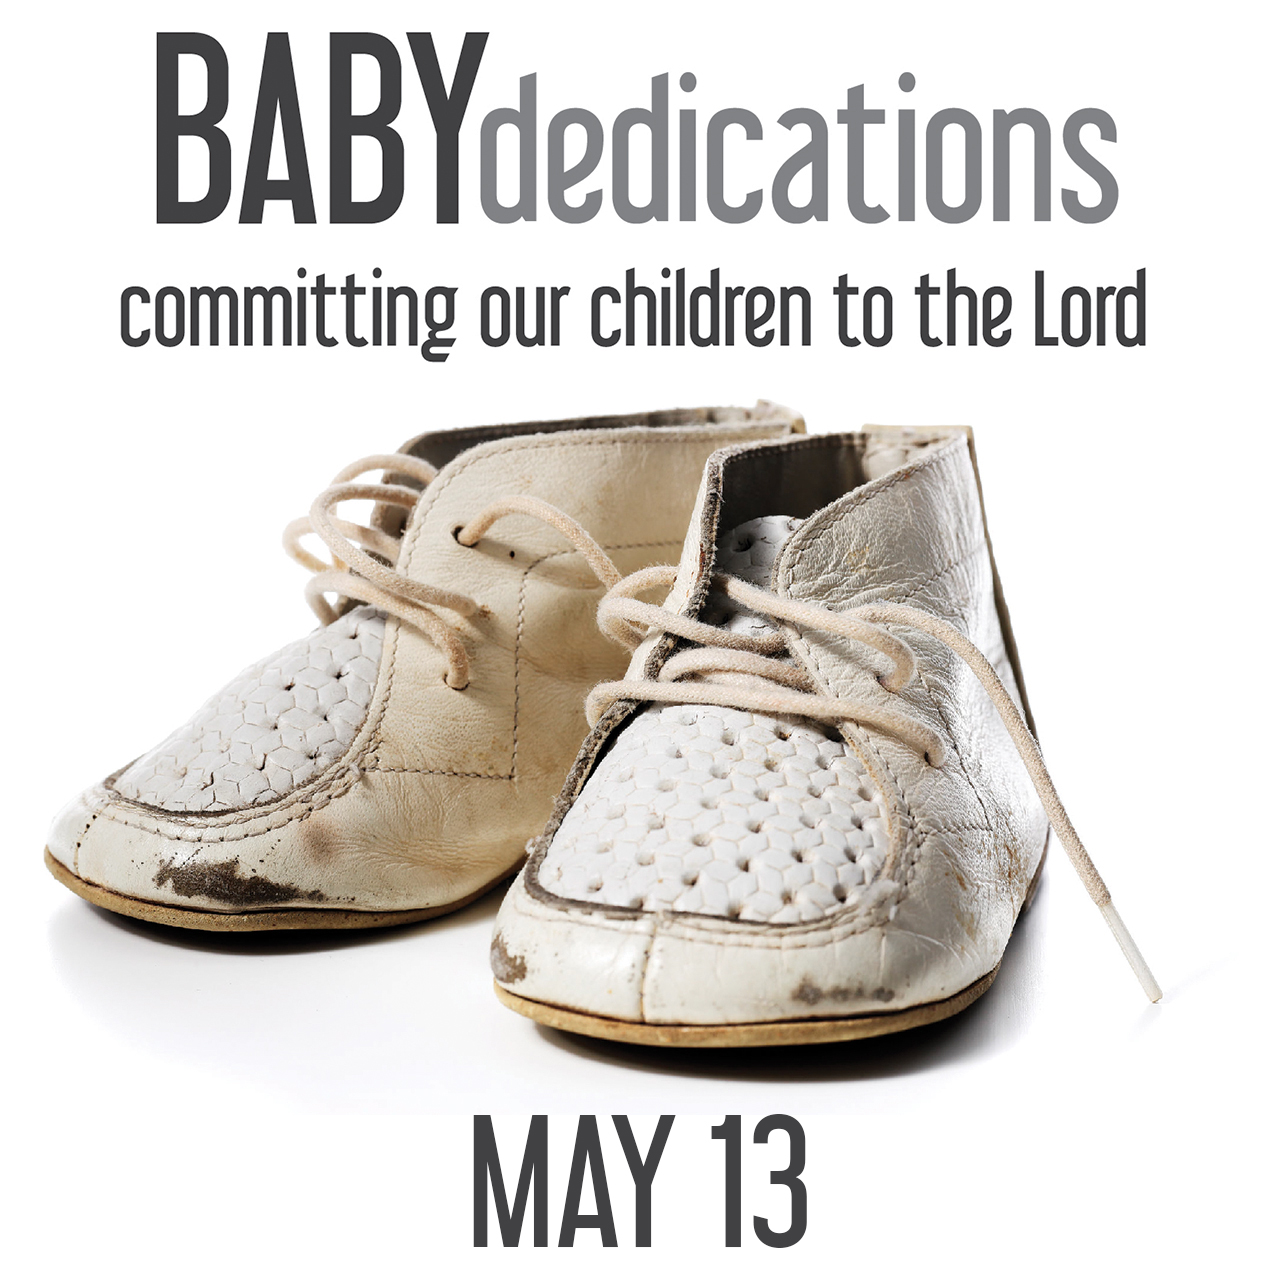 Babydedications